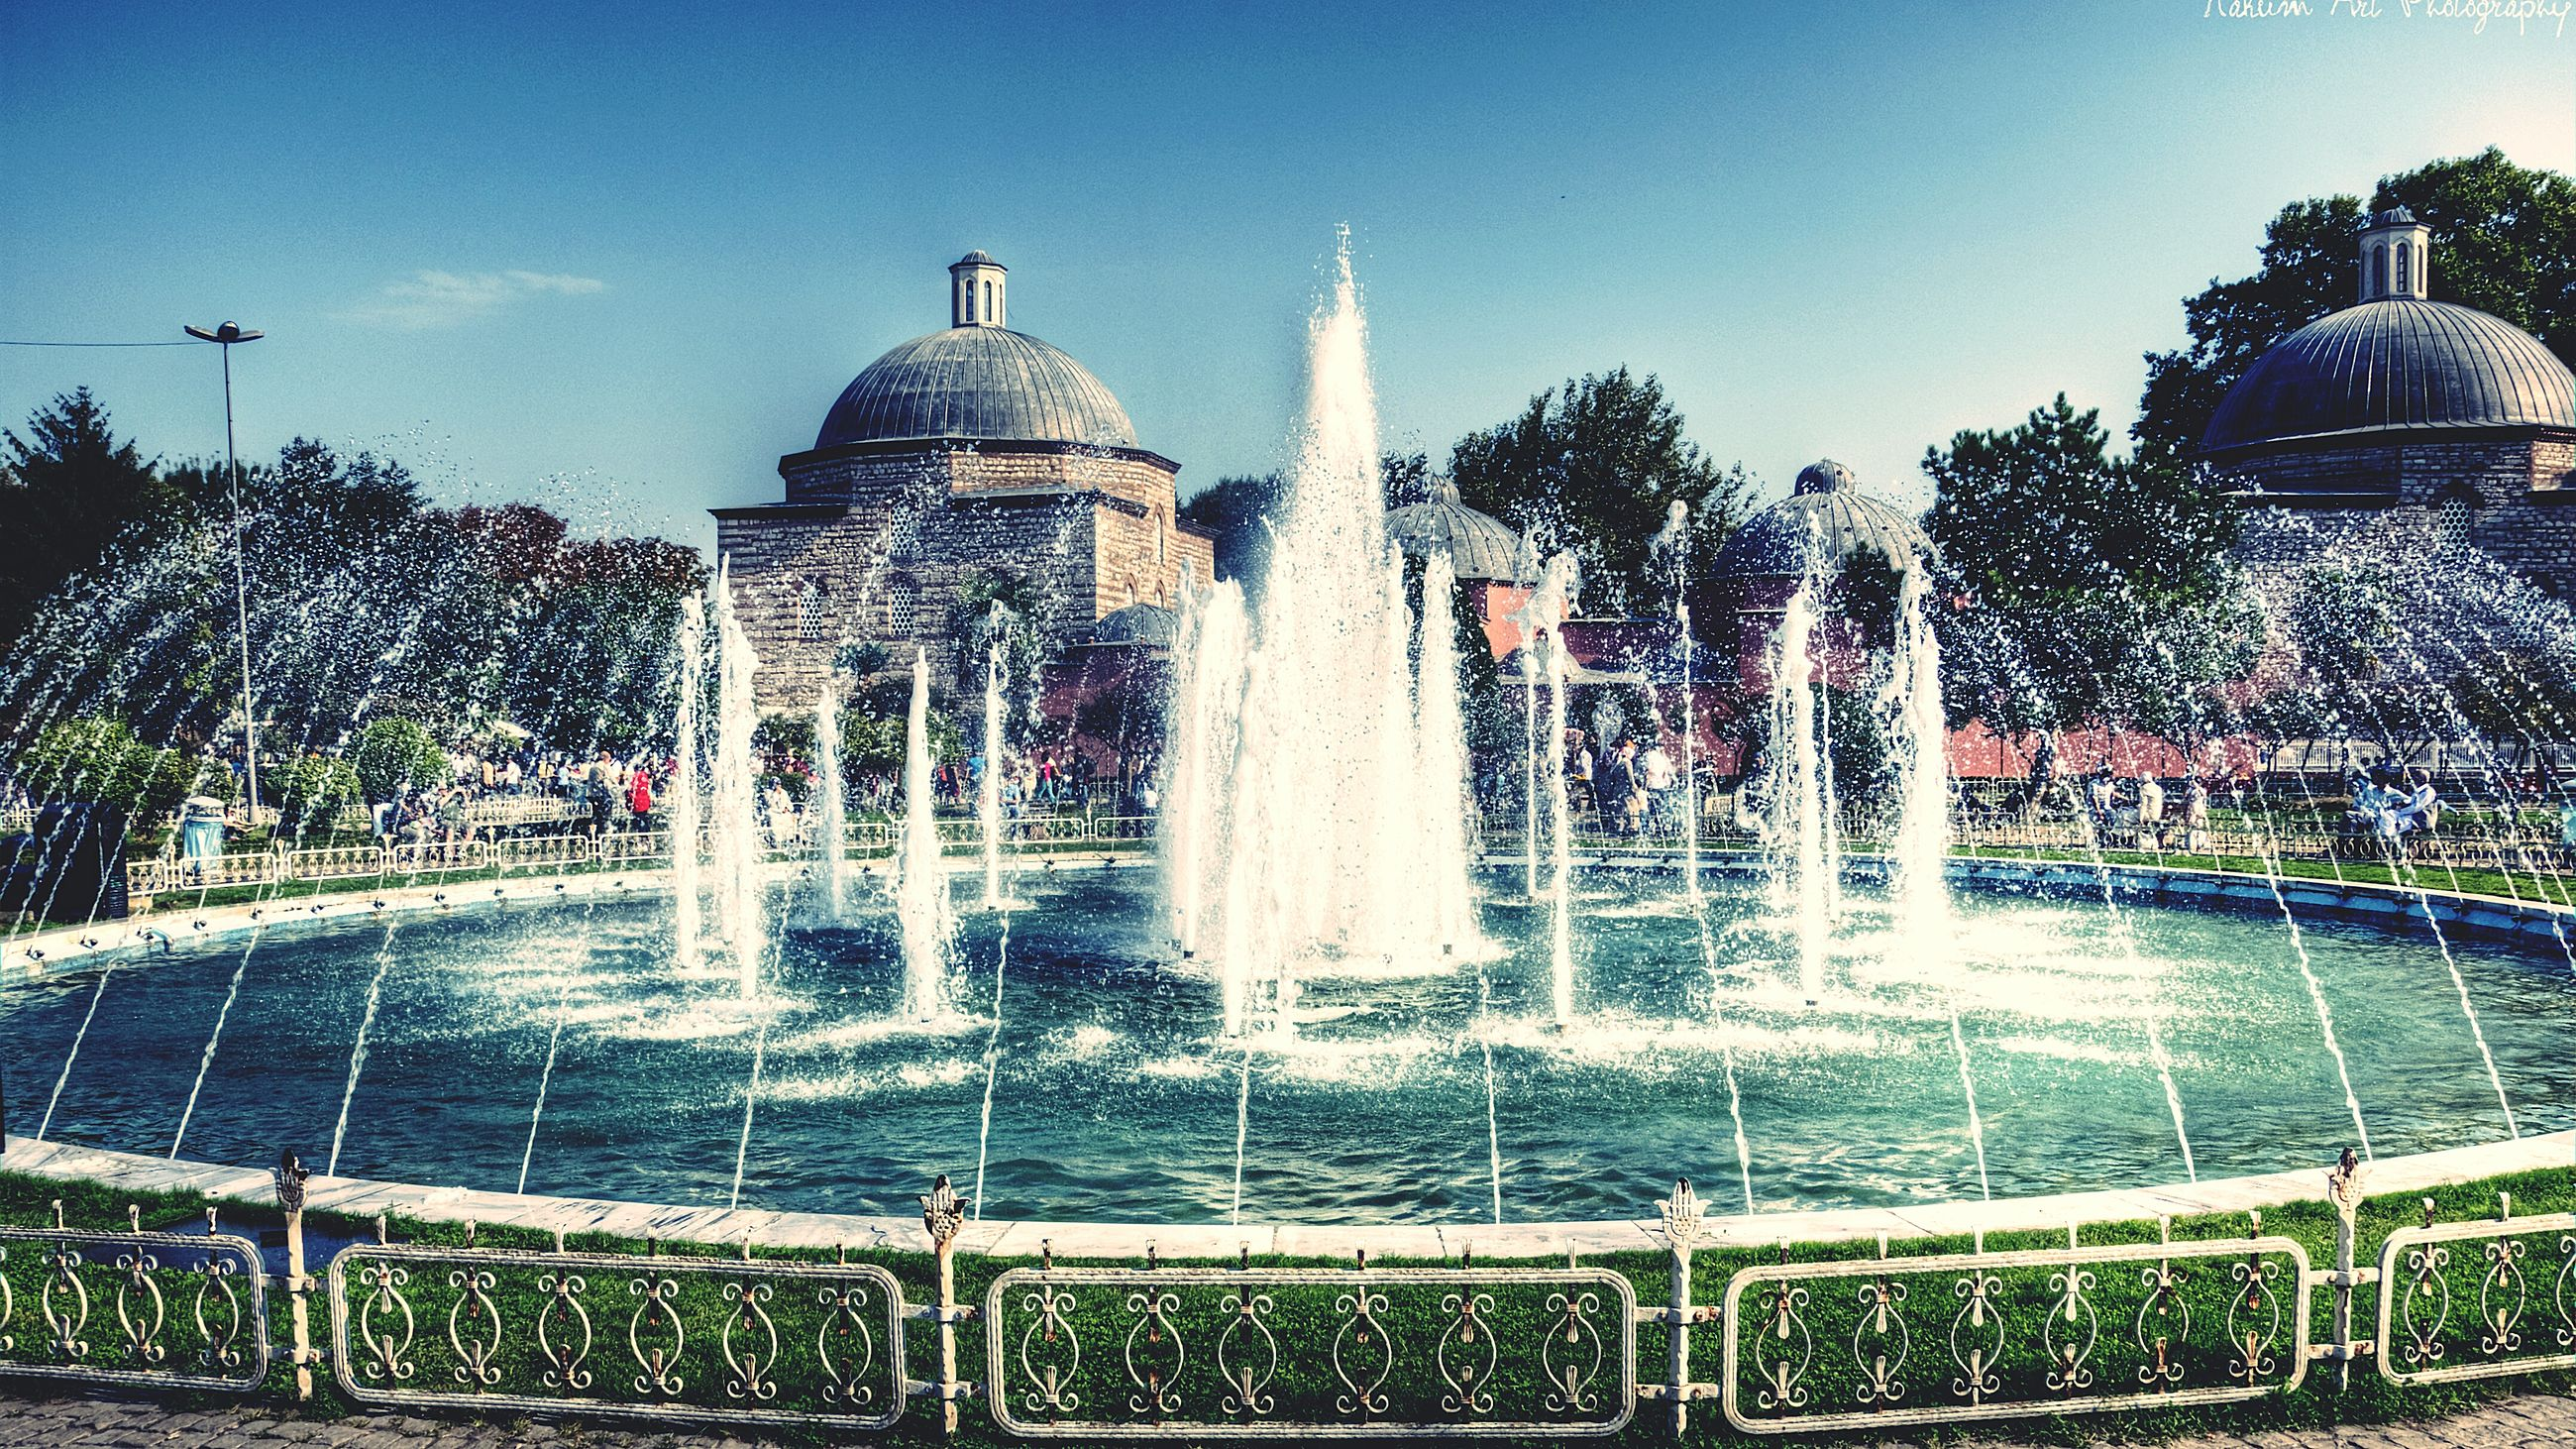 fountain, architecture, built structure, water, building exterior, famous place, spraying, travel destinations, motion, sculpture, tree, statue, splashing, tourism, international landmark, clear sky, travel, capital cities, art and craft, art